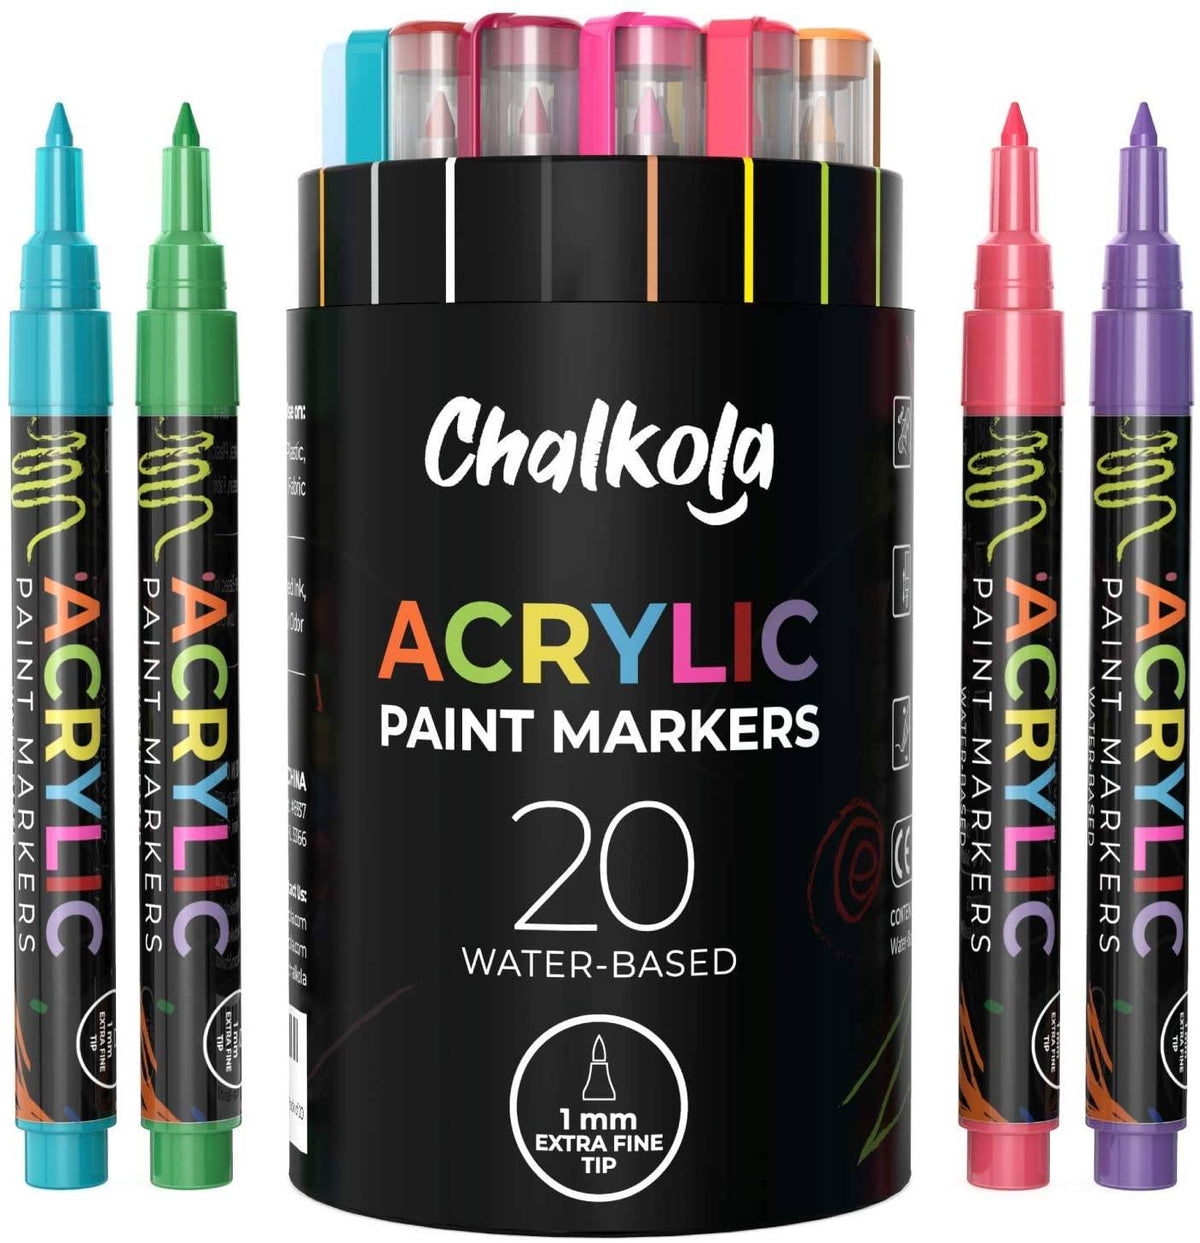 Acrylic Paint Marker Pens - Pack of 20, Fine Tip 1mm Extra Fine